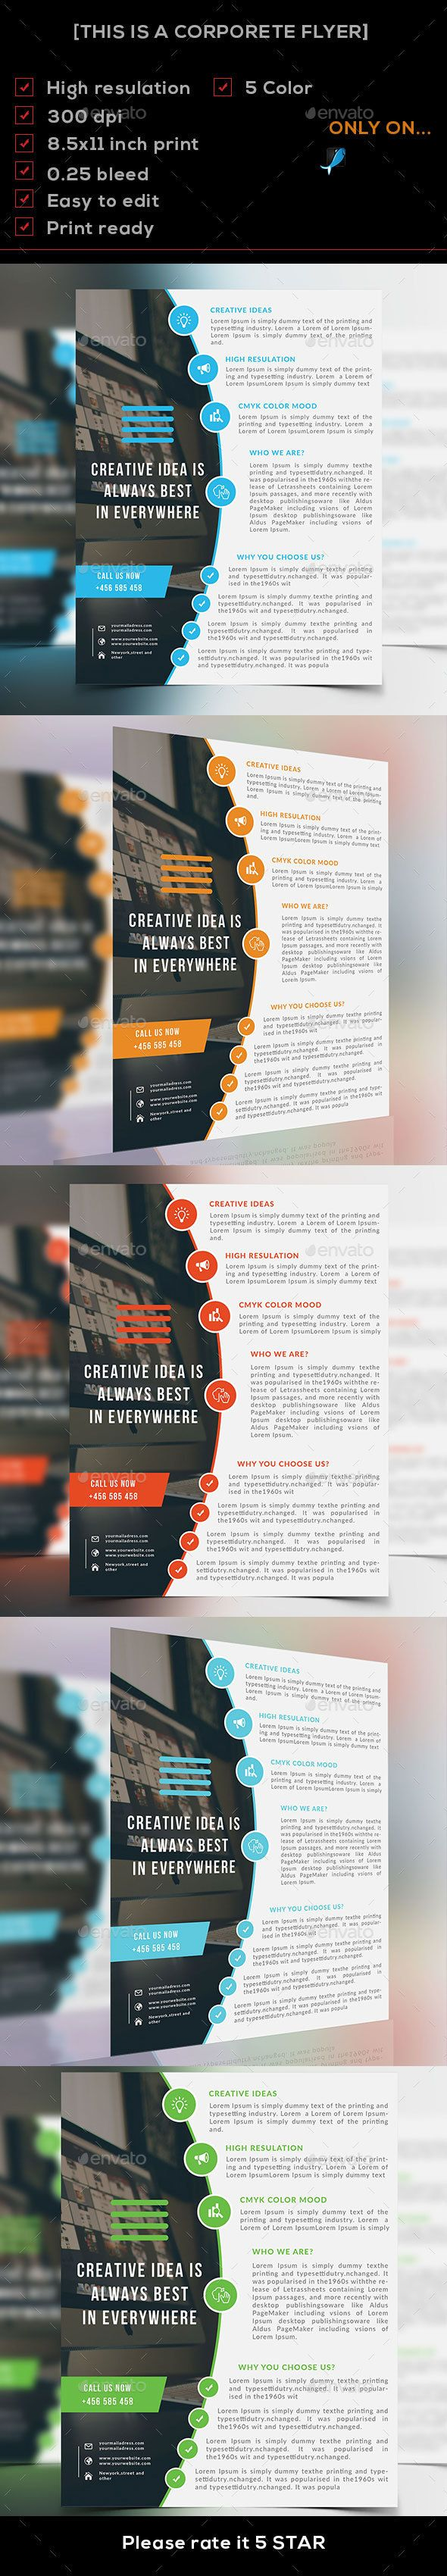 Corporate Flyer Template PSD #design Download: http://graphicriver.net/item/corporate-flyer/14328706?ref=ksioks